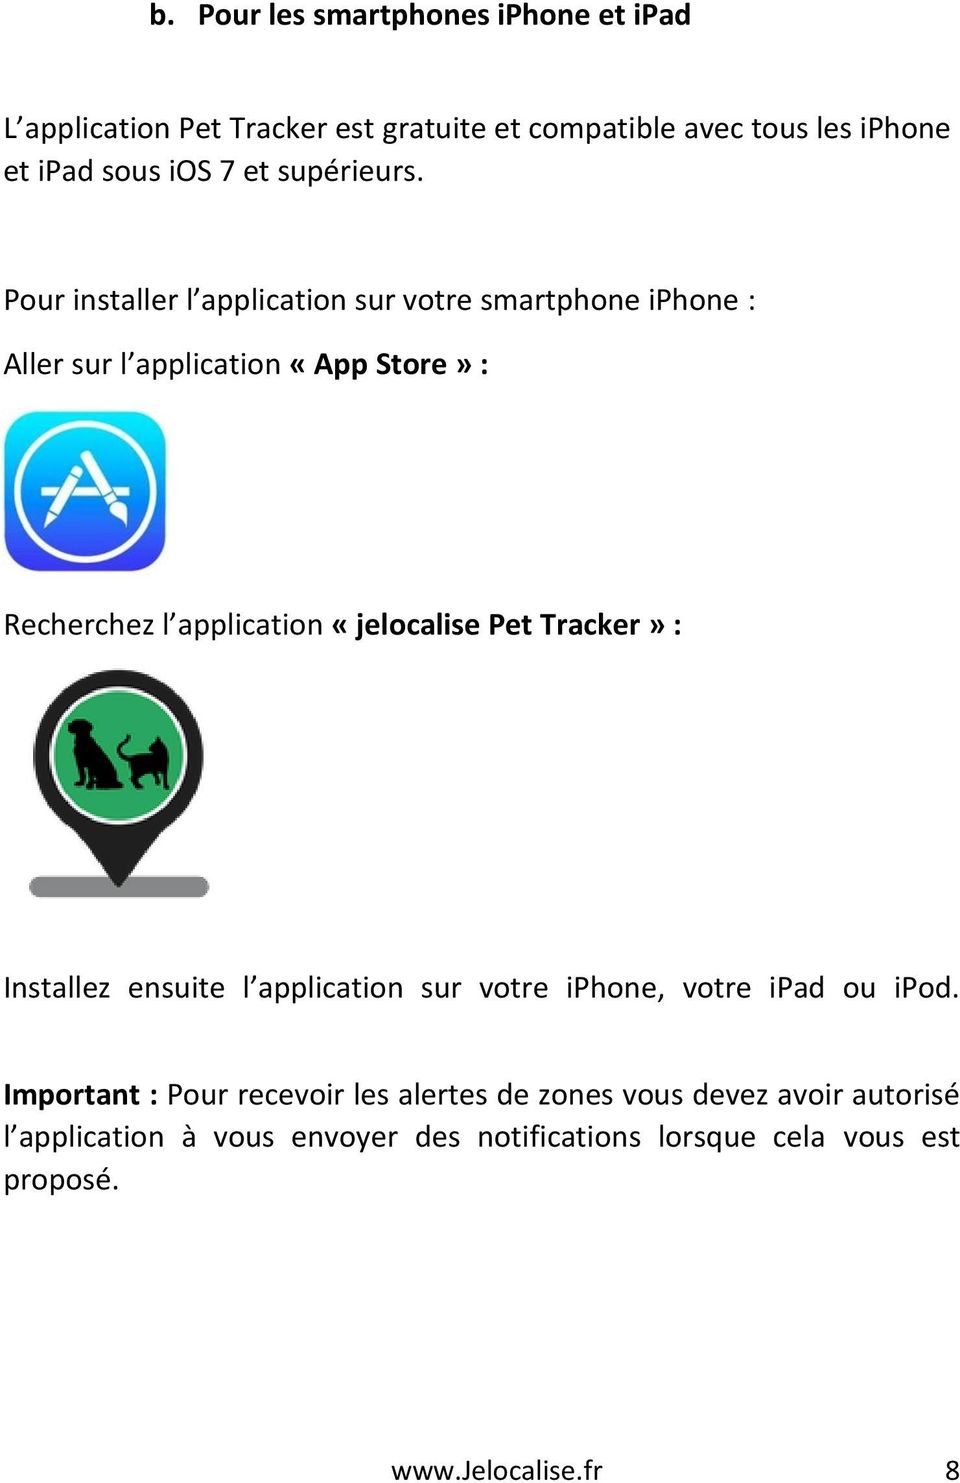 Pour installer l application sur votre smartphone iphone : Aller sur l application «App Store» : Recherchez l application «jelocalise